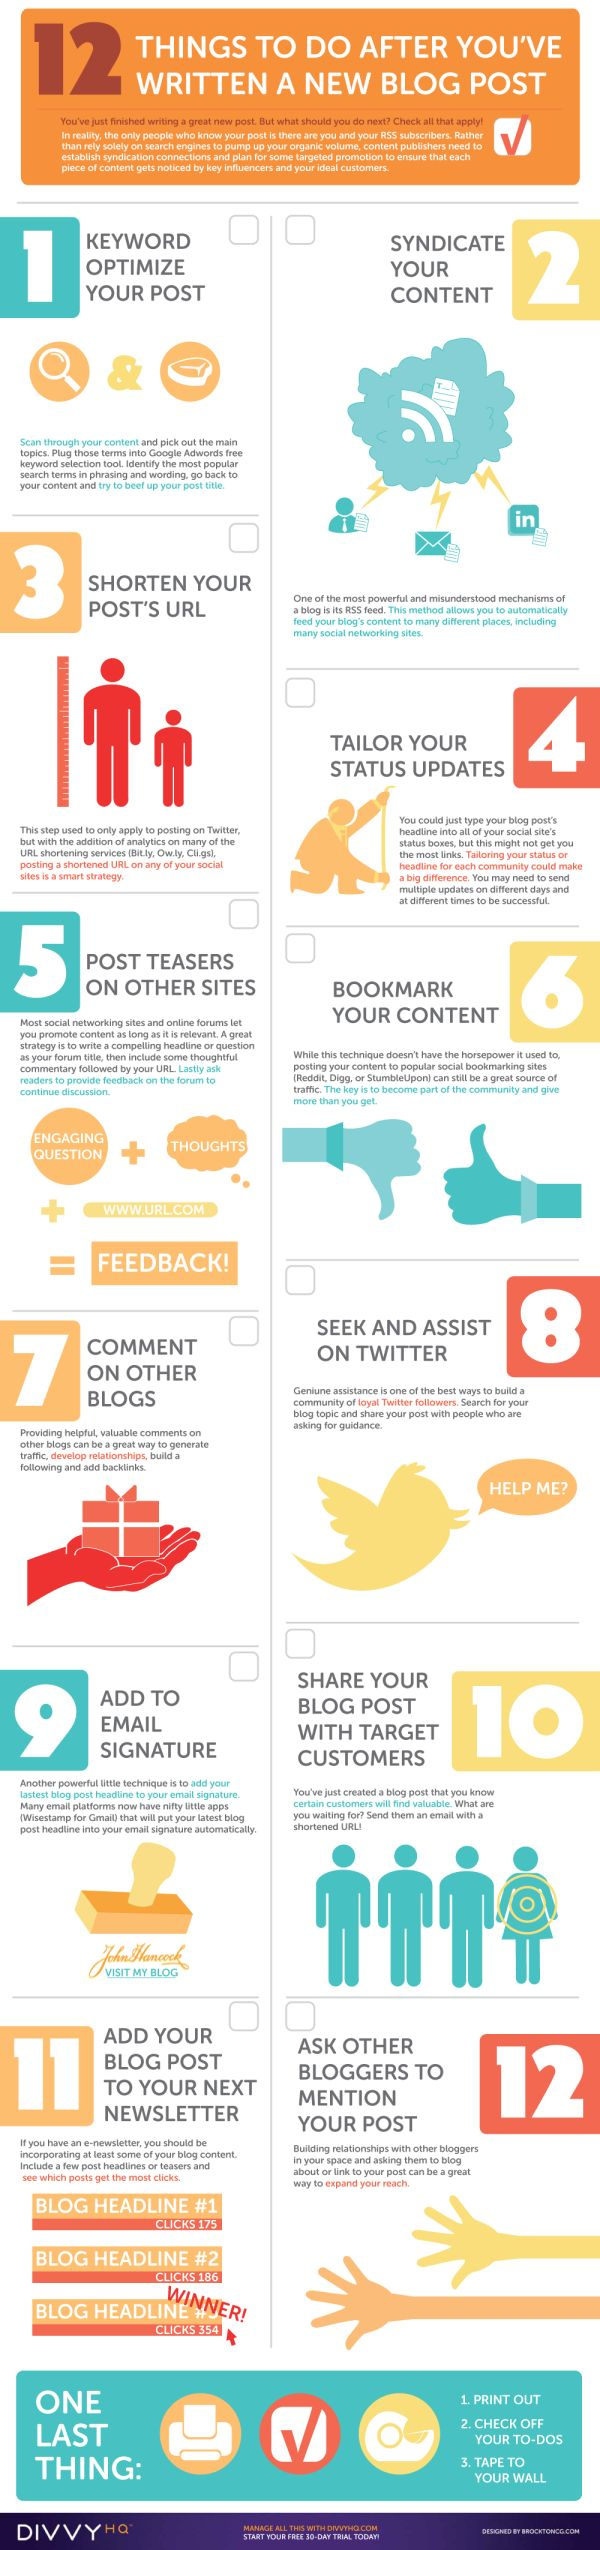 12 Things To Do After You've Written A New Blog Post infographic